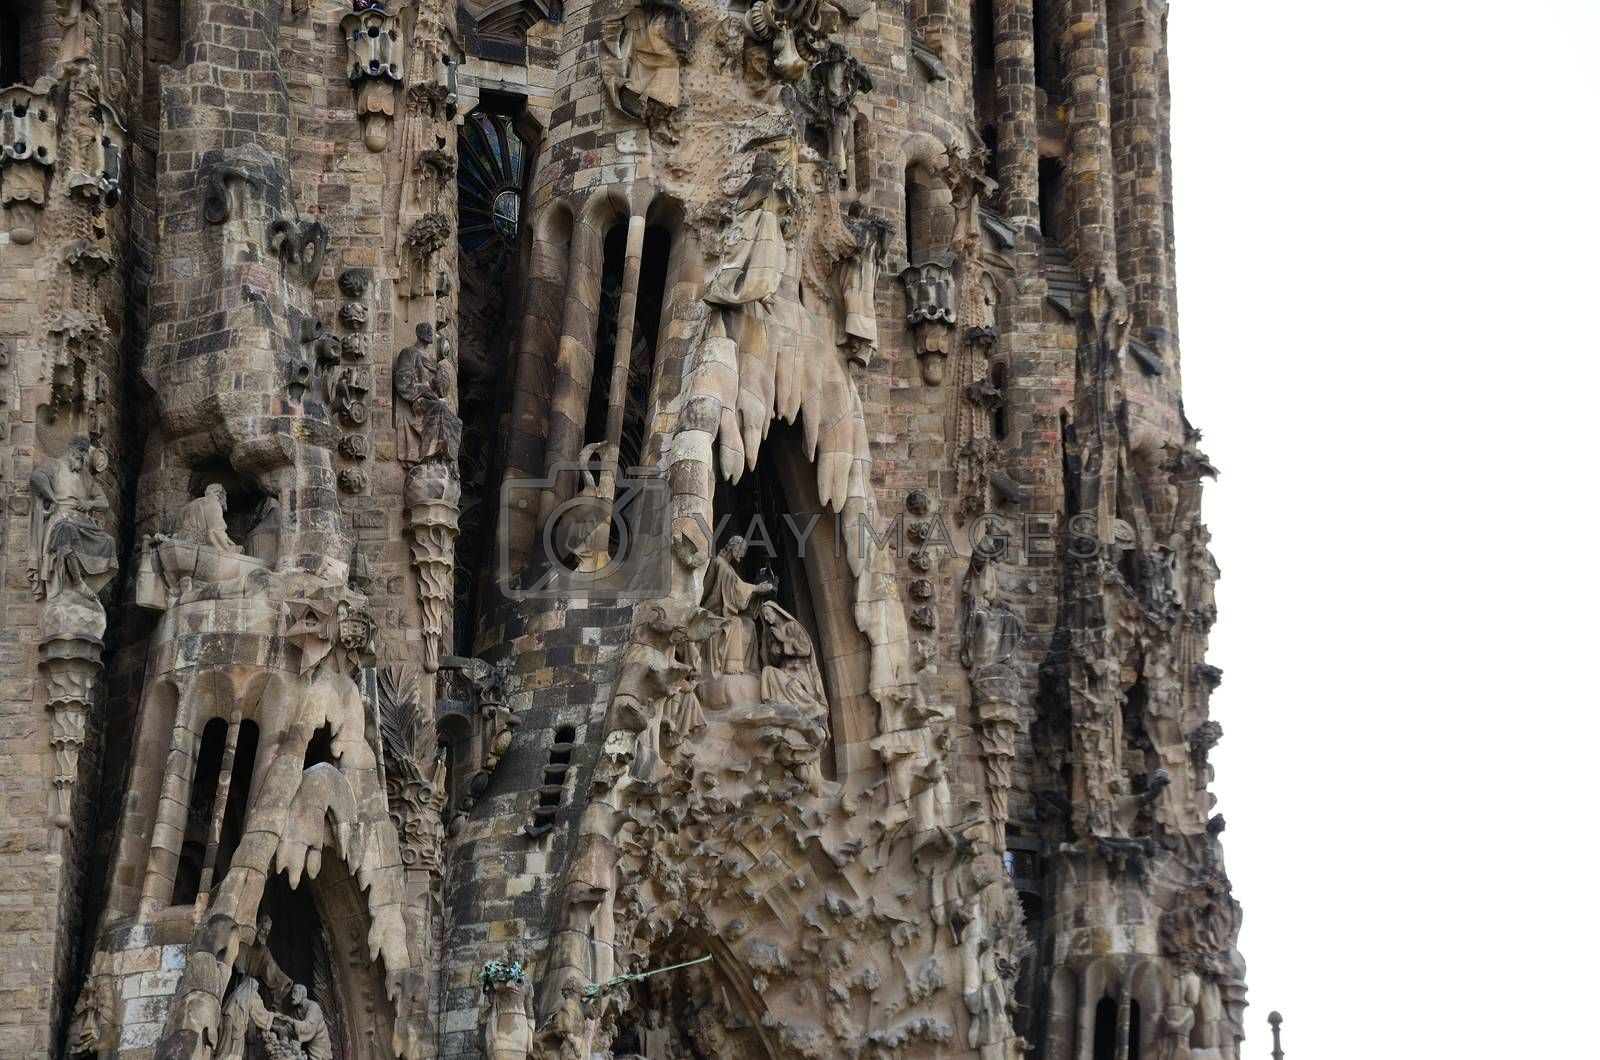 high ornate tower of the cathedral in Barcelona